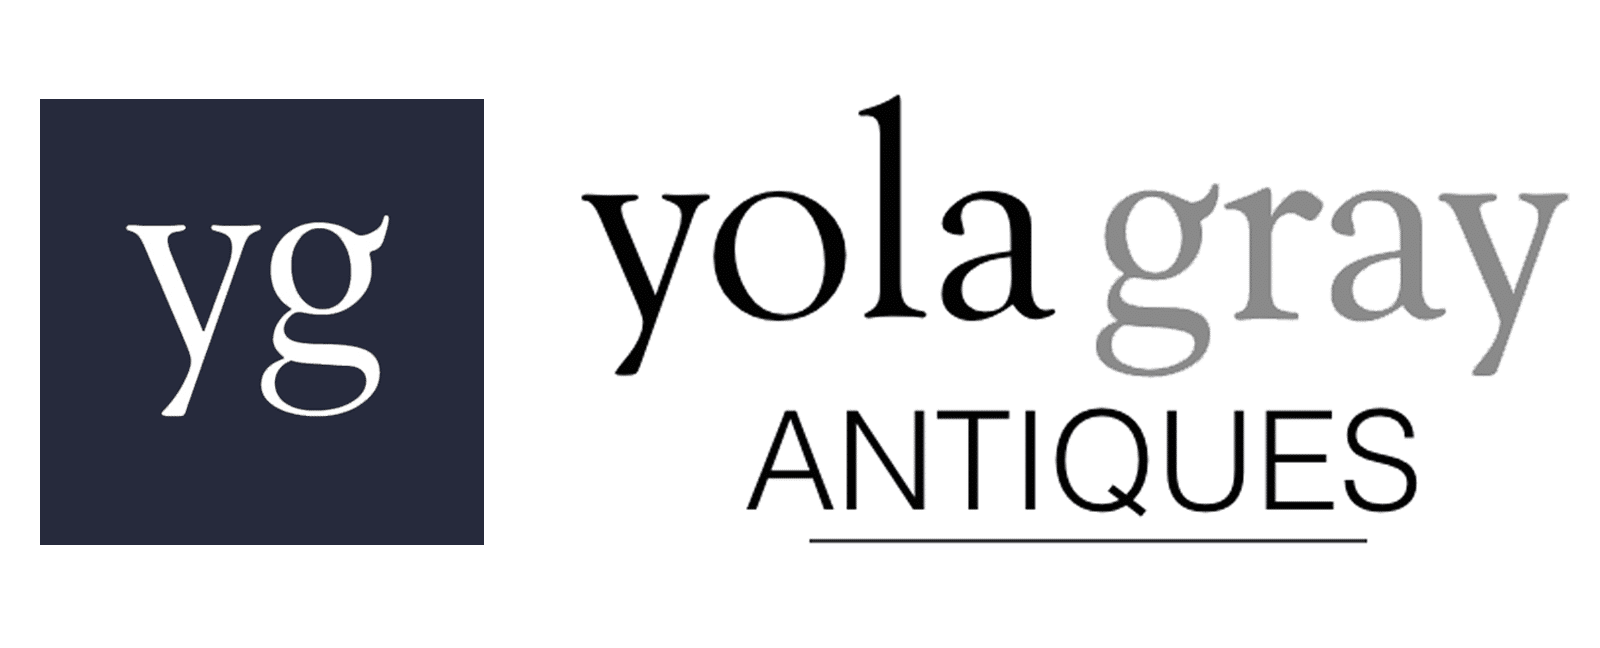 Antique Furniture & Four Poster Beds – Yolanda Gray Antiques